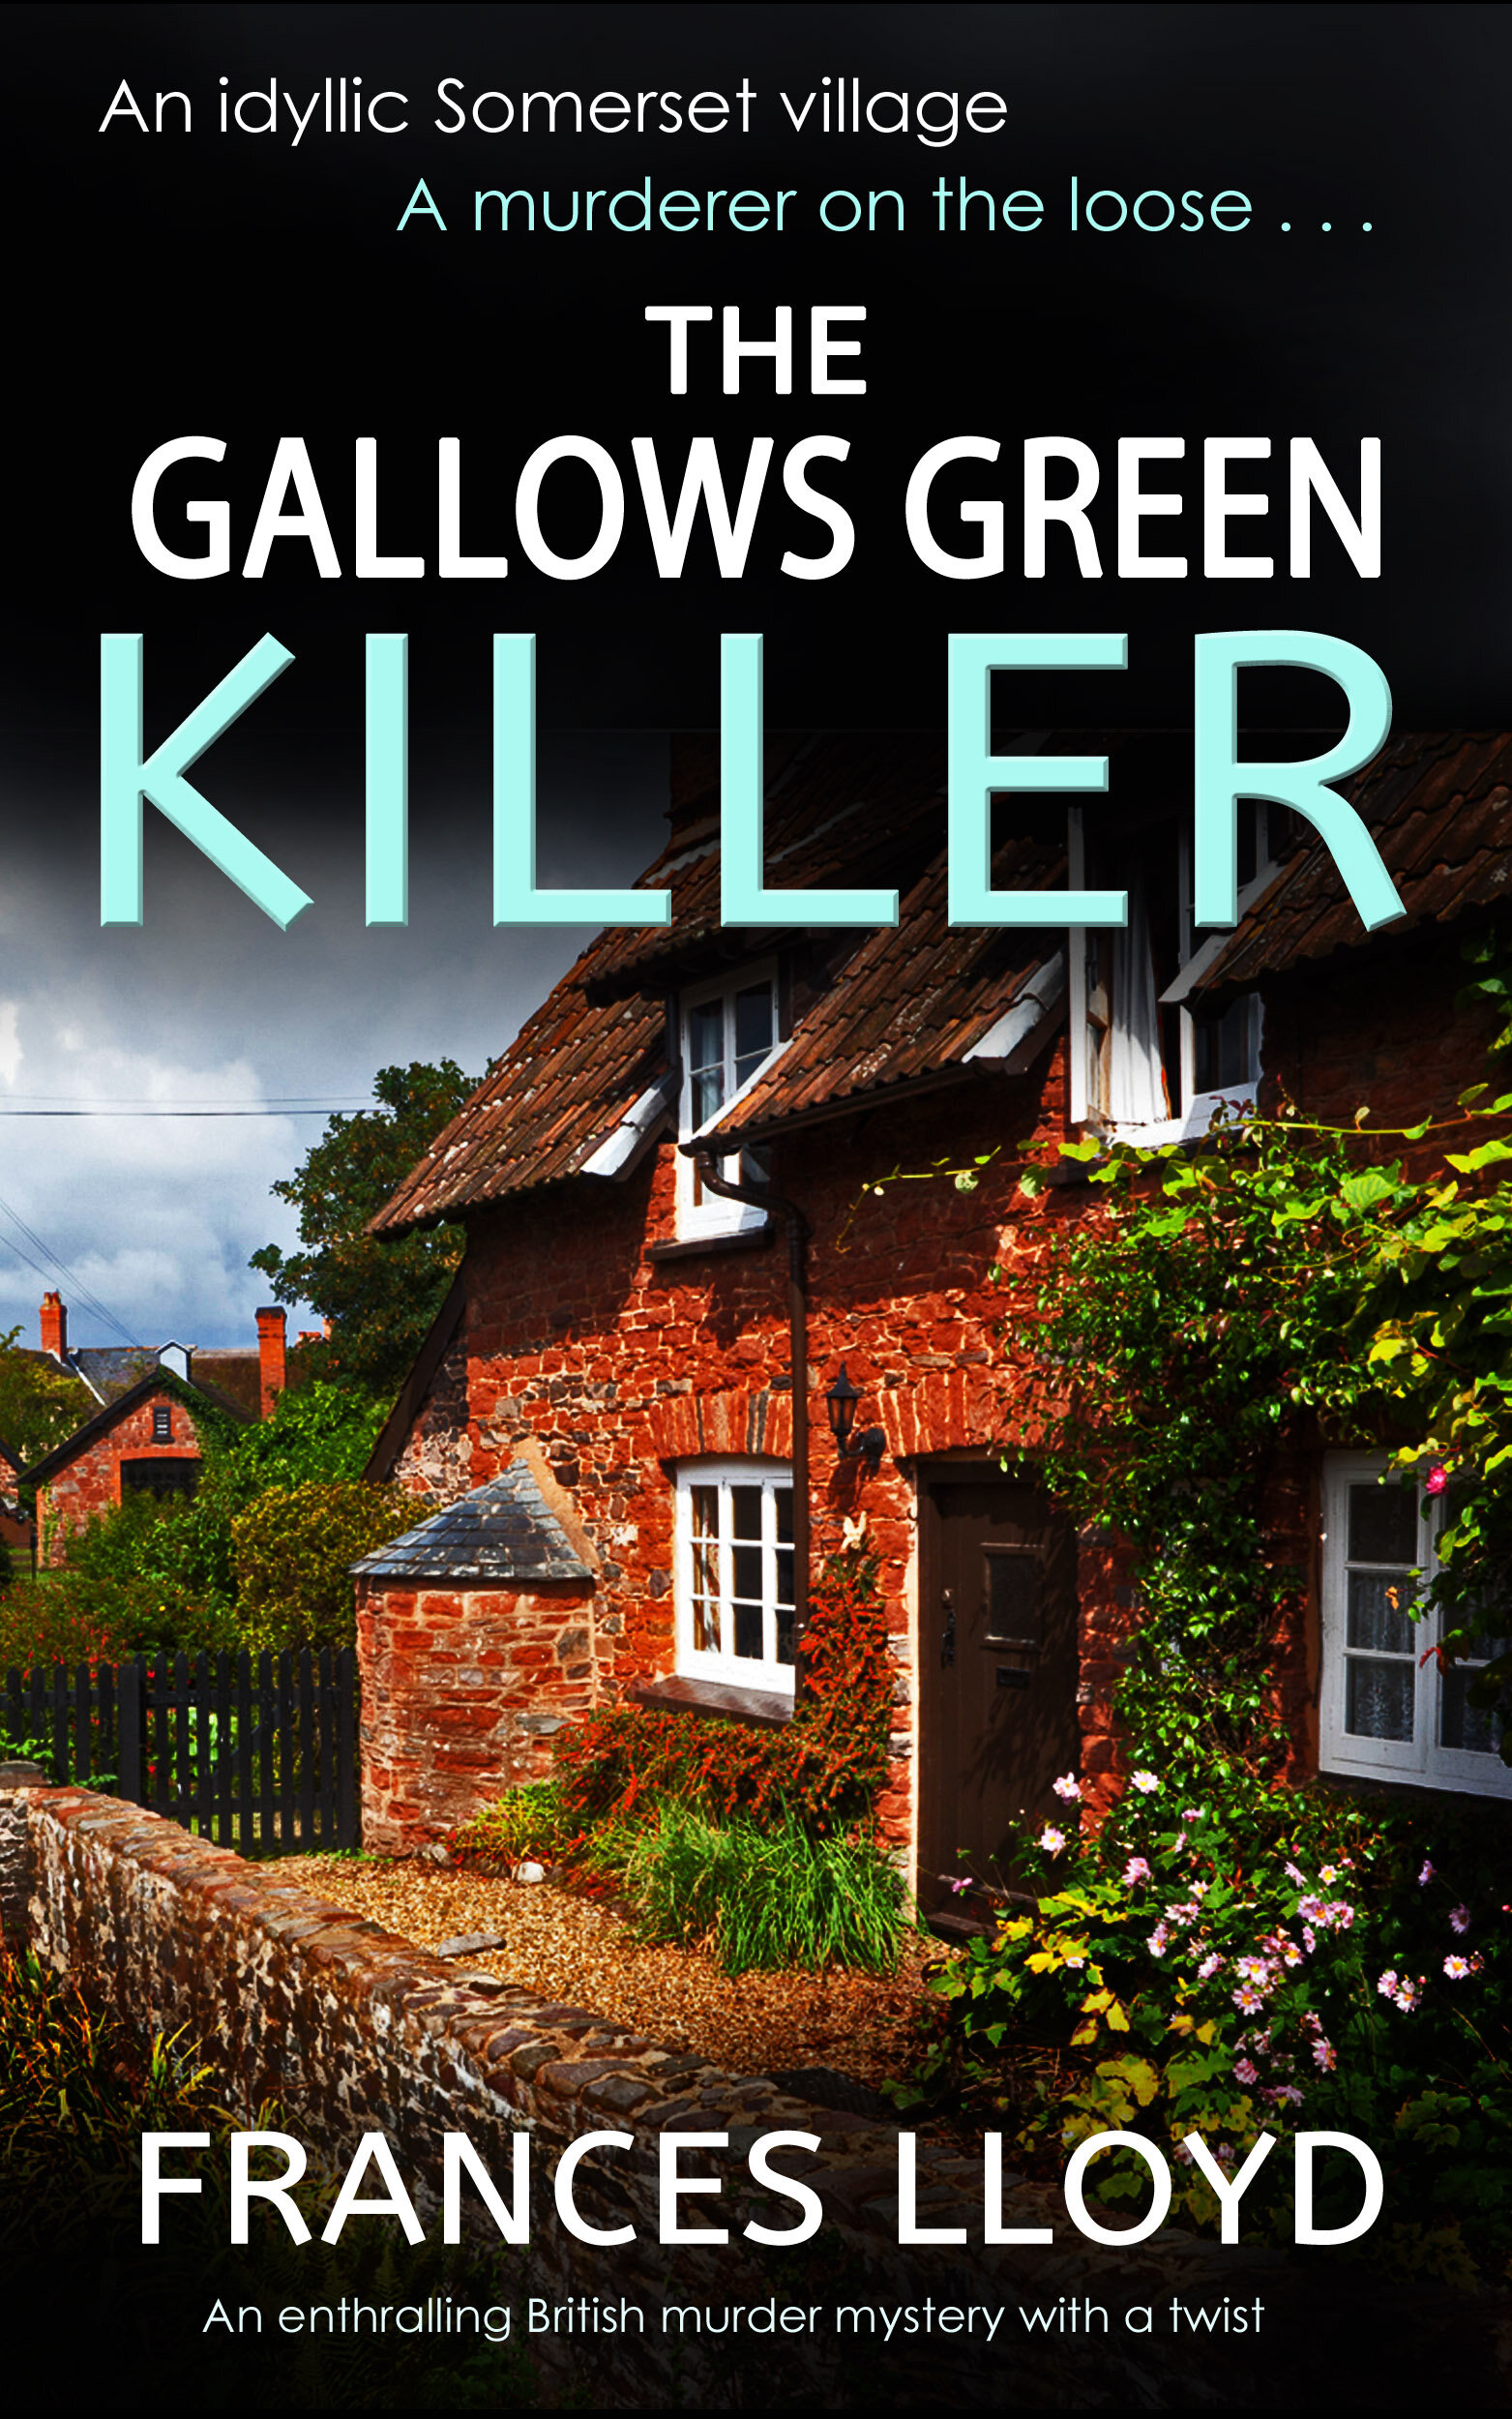 GALLOWS GREEN killer publish.jpg